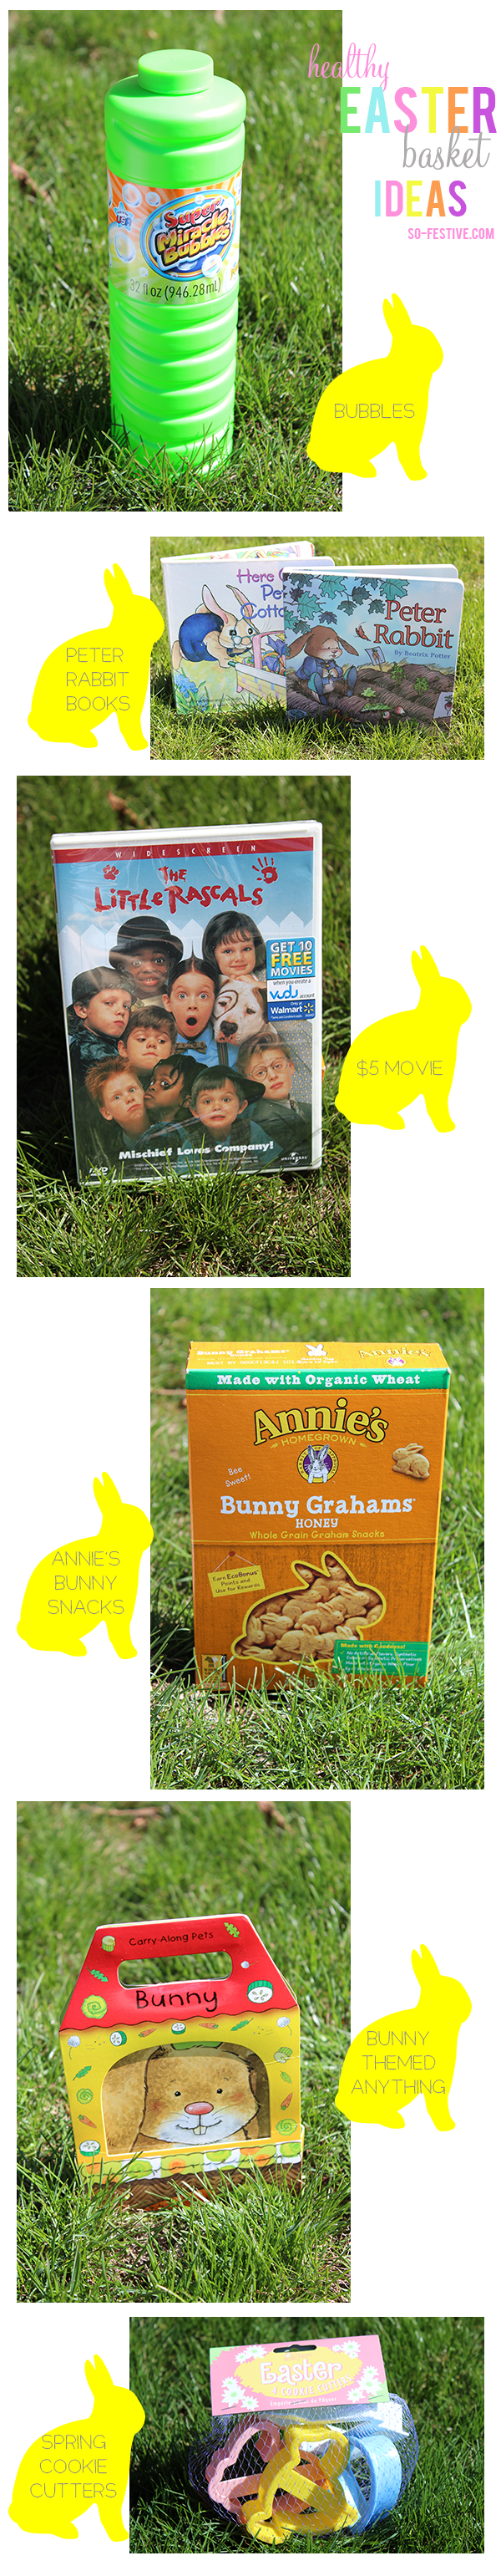 Cheap And Healthy Easter Basket Ideas For Kids. ️Bray: Make Carrots With  Annieu0027s Snacks, Sunglasses, Sunblock, Bubbles.